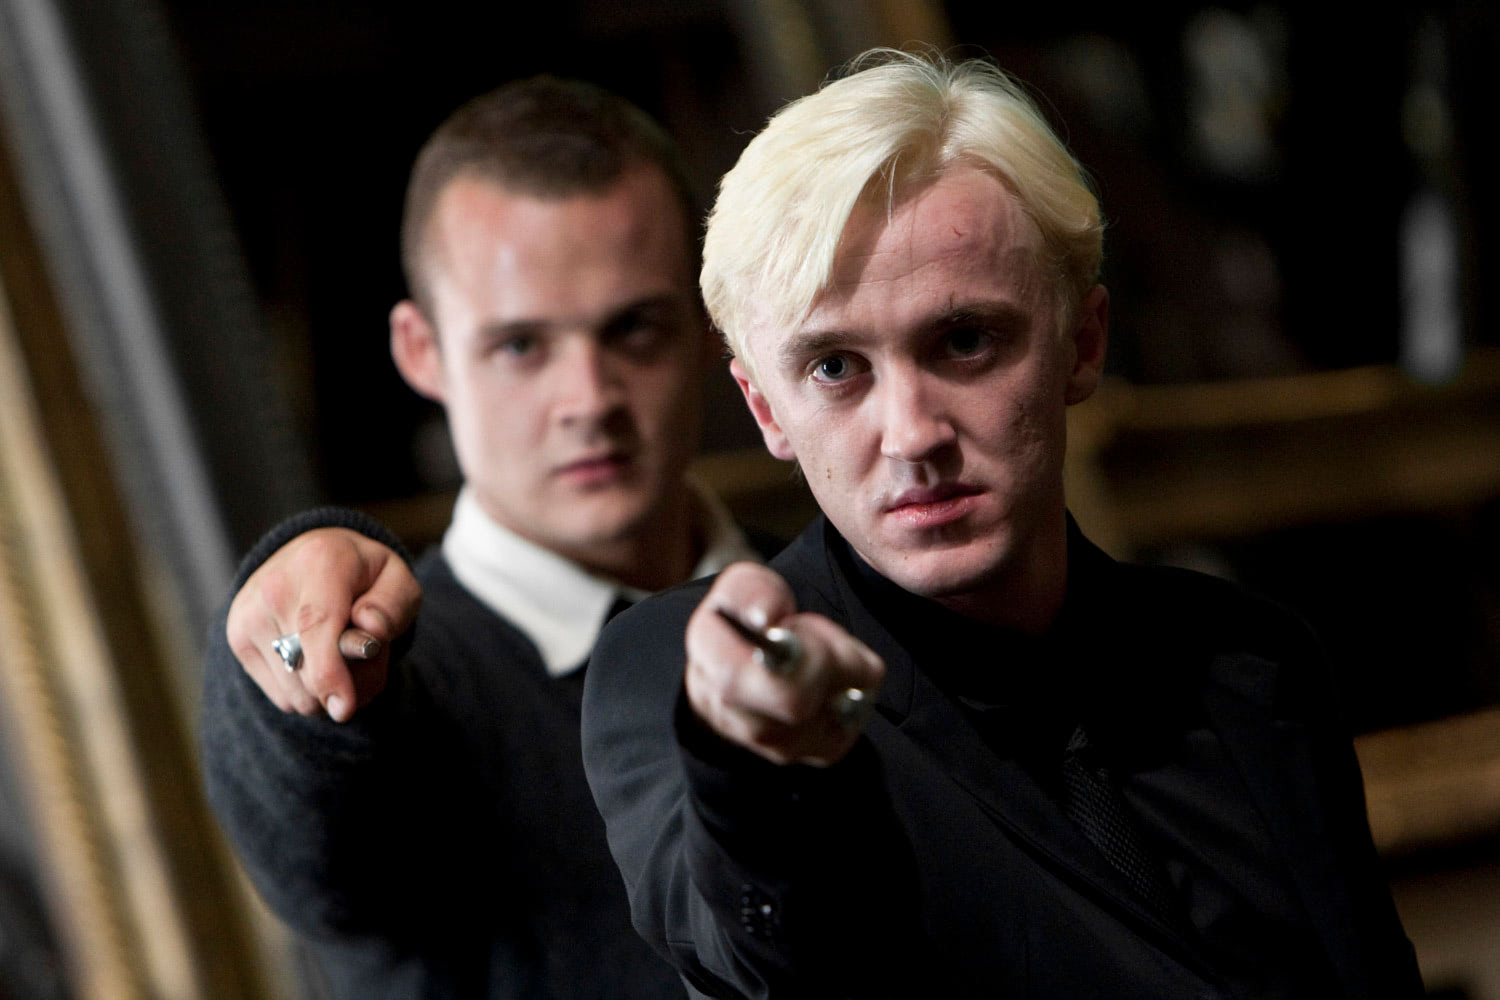 Draco and Goyle with wands ready